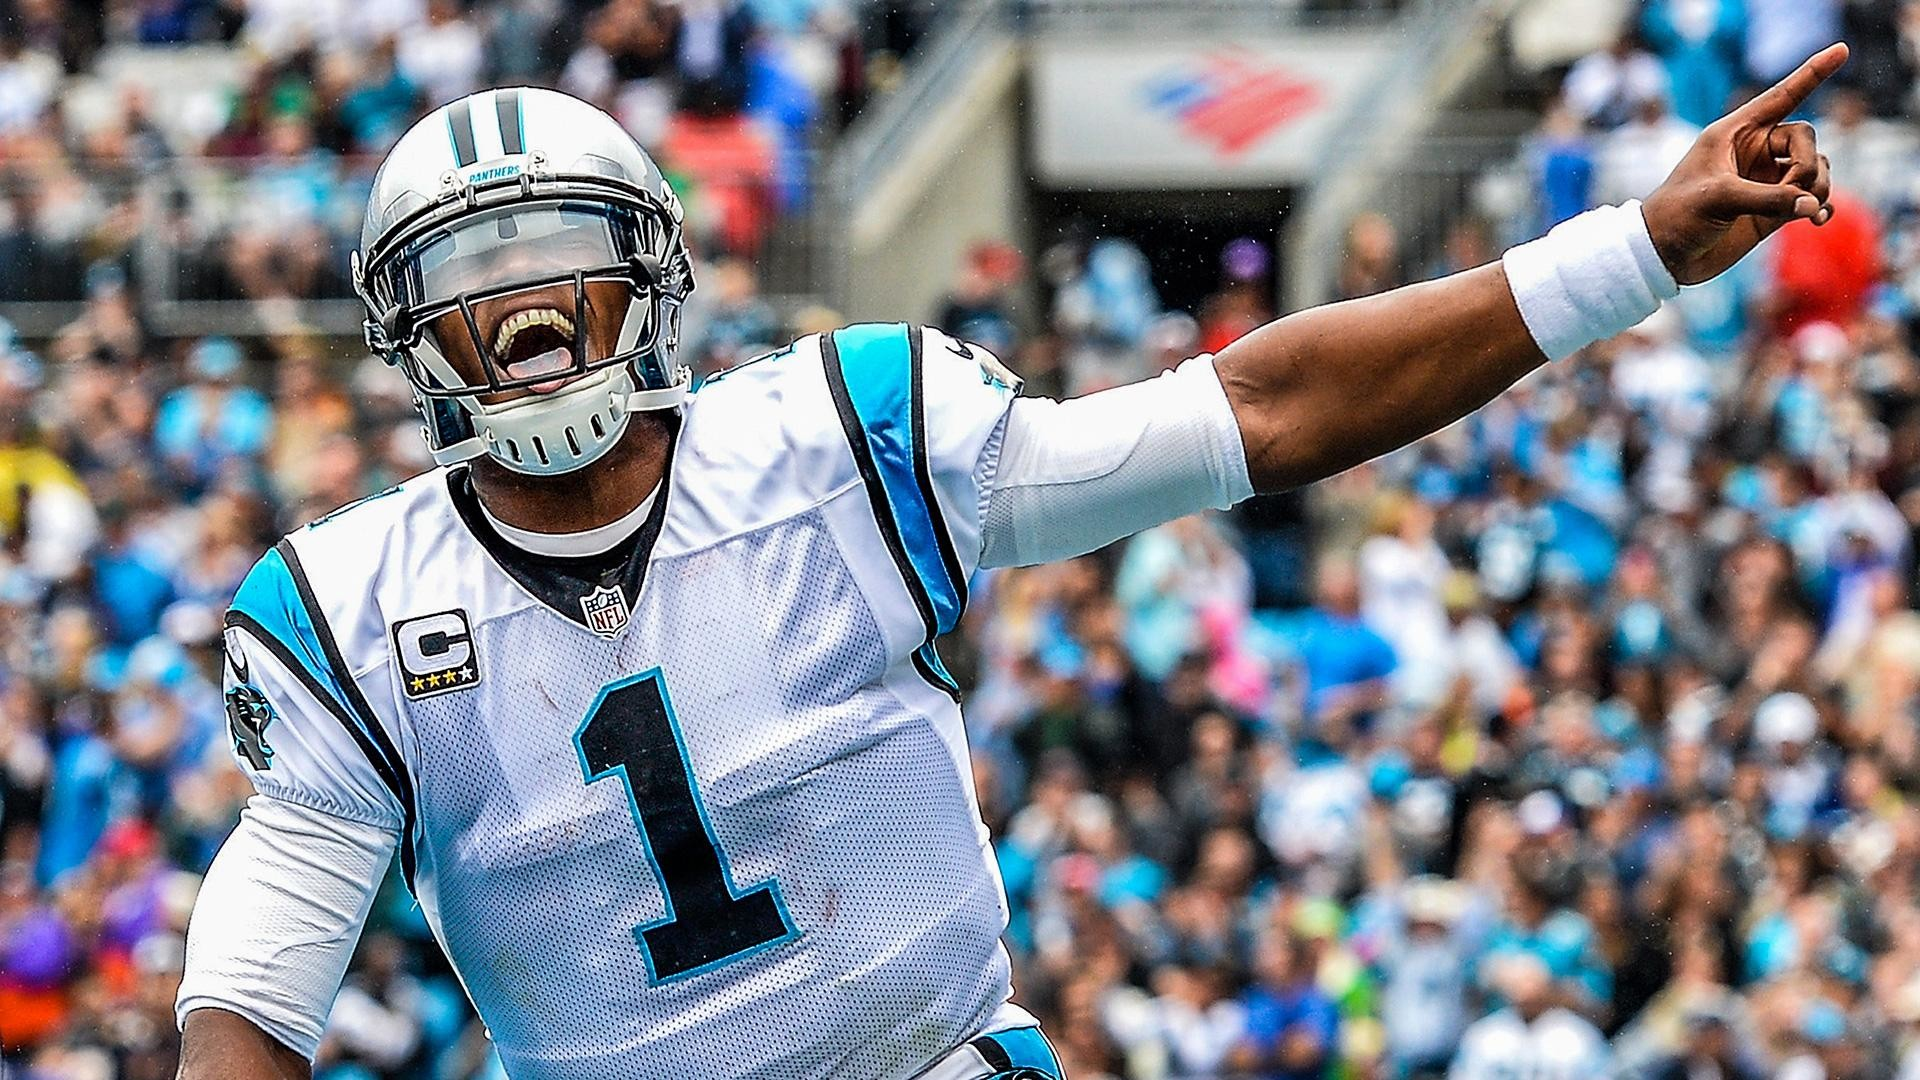 wallpaper.wiki-Pictures-Cam-Newton-HD-PIC-WPD0011191